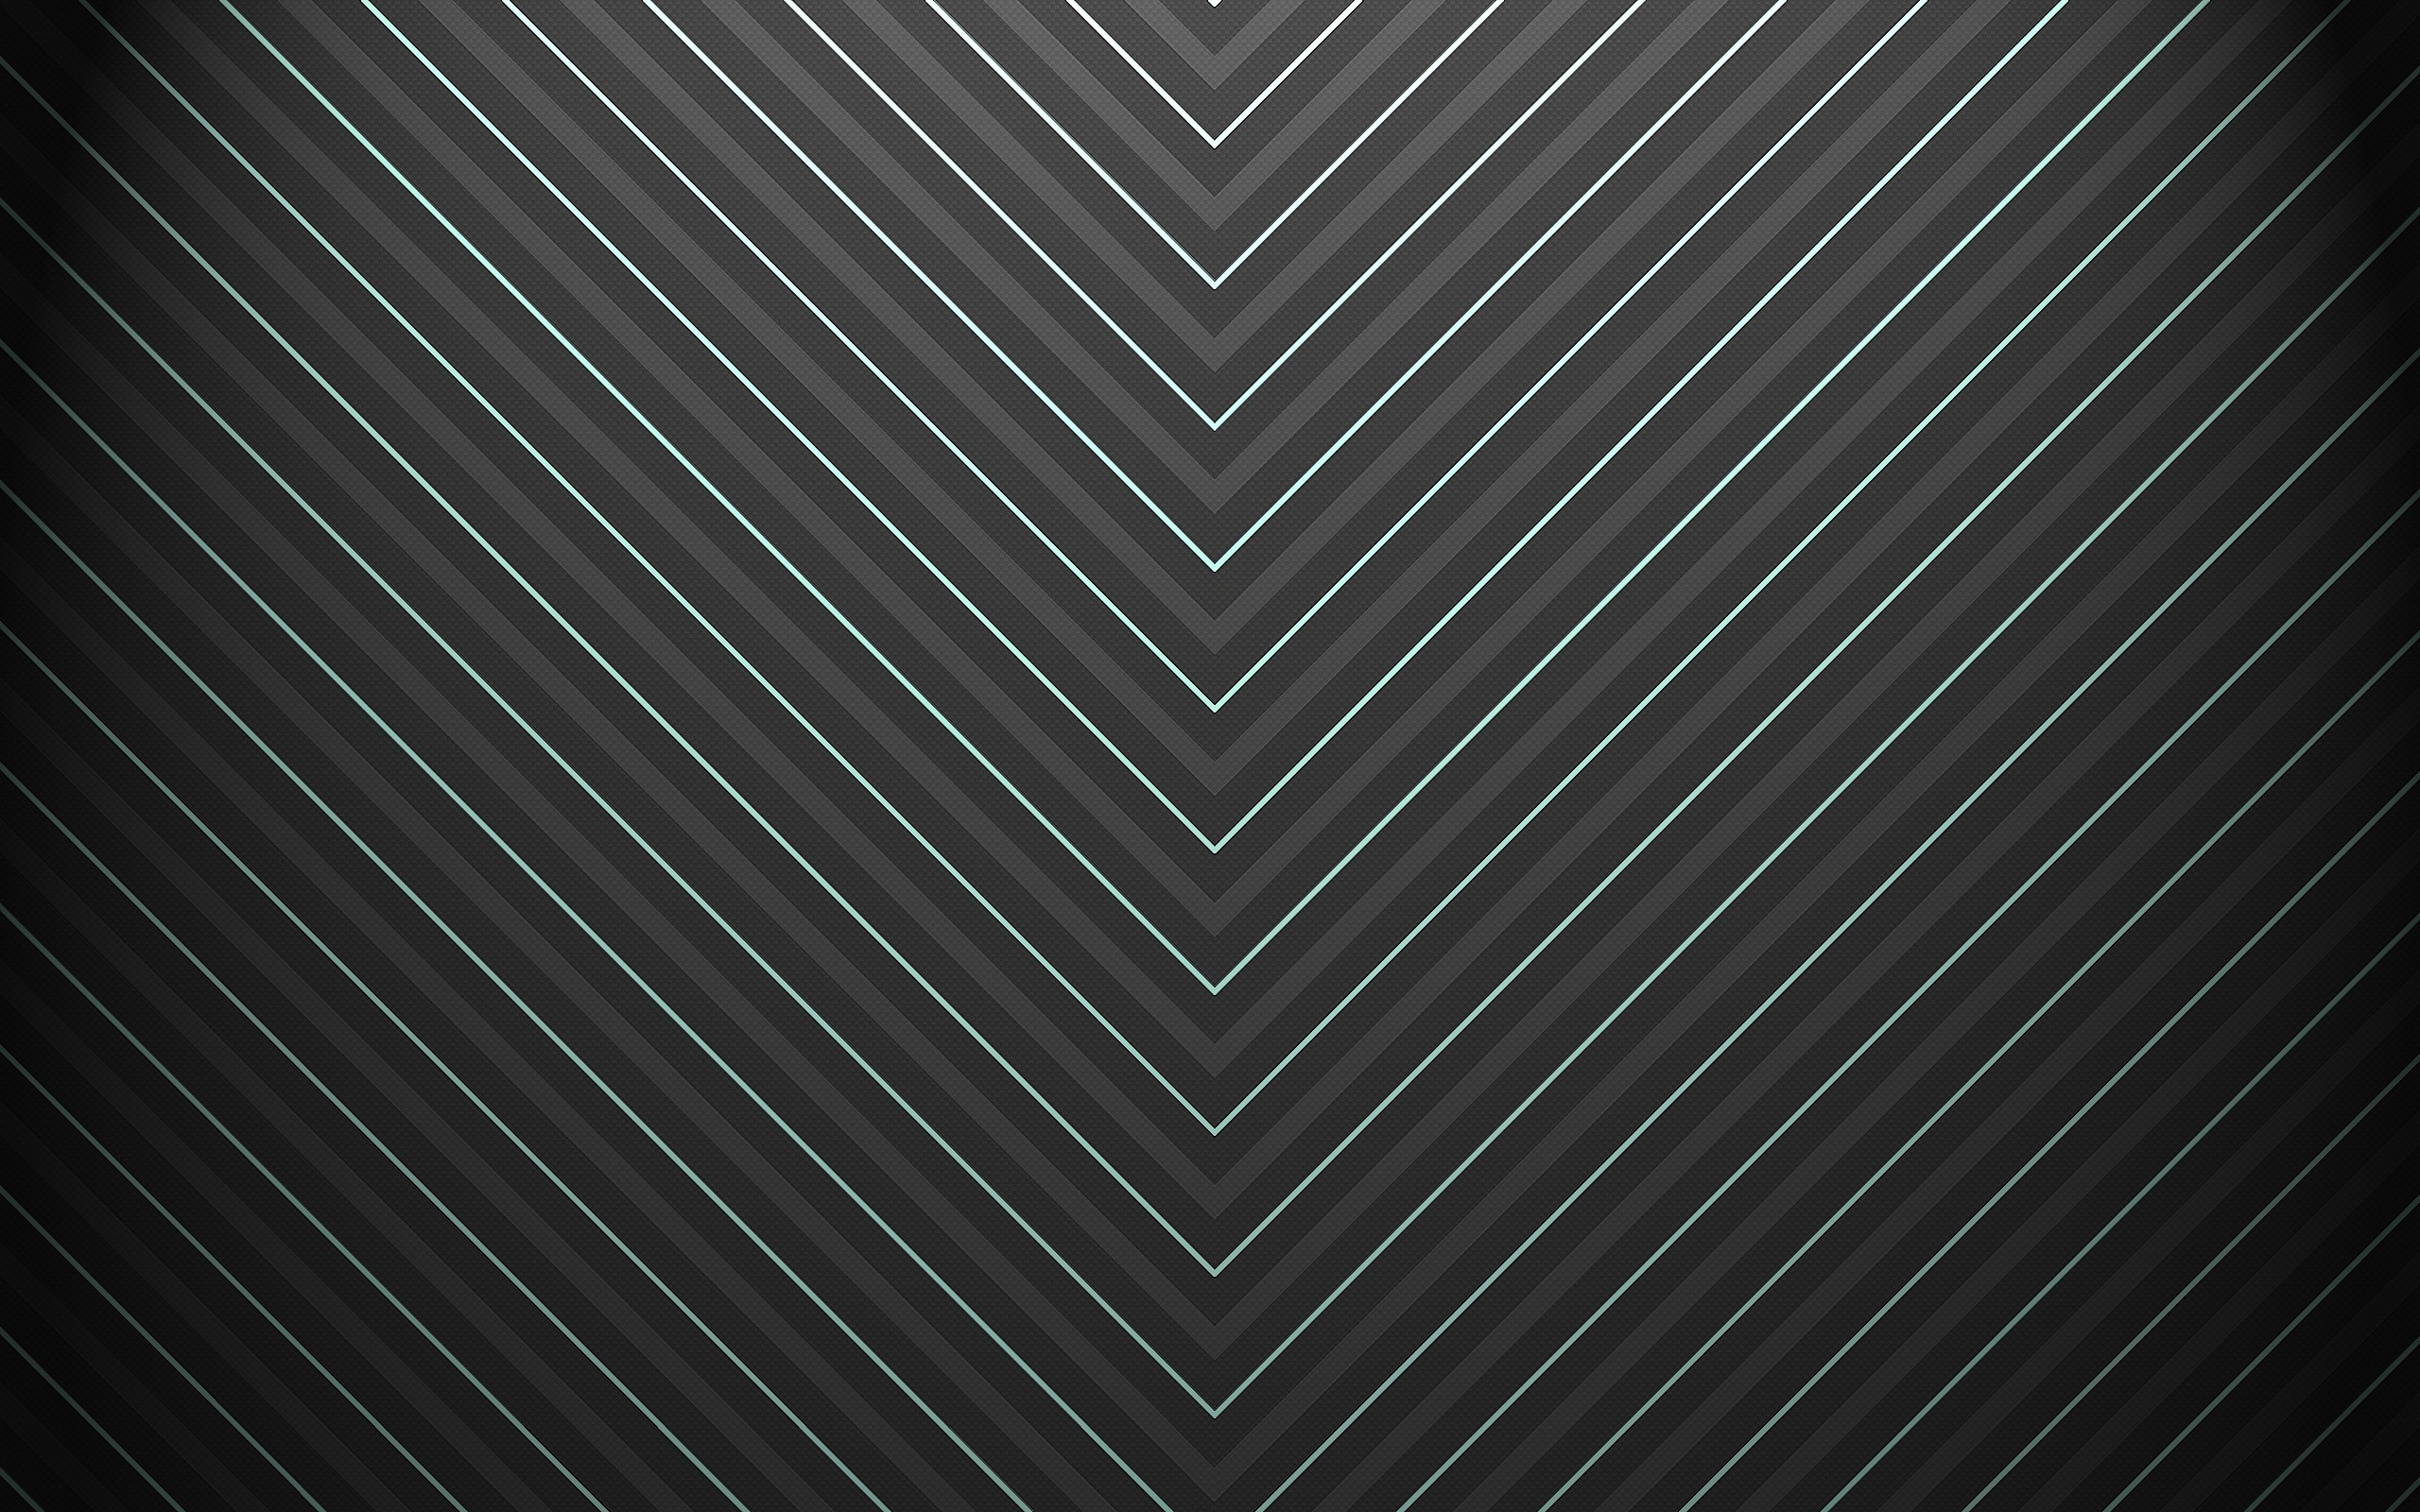 2560x1600 Arrow Line in black and gray background wallpaper